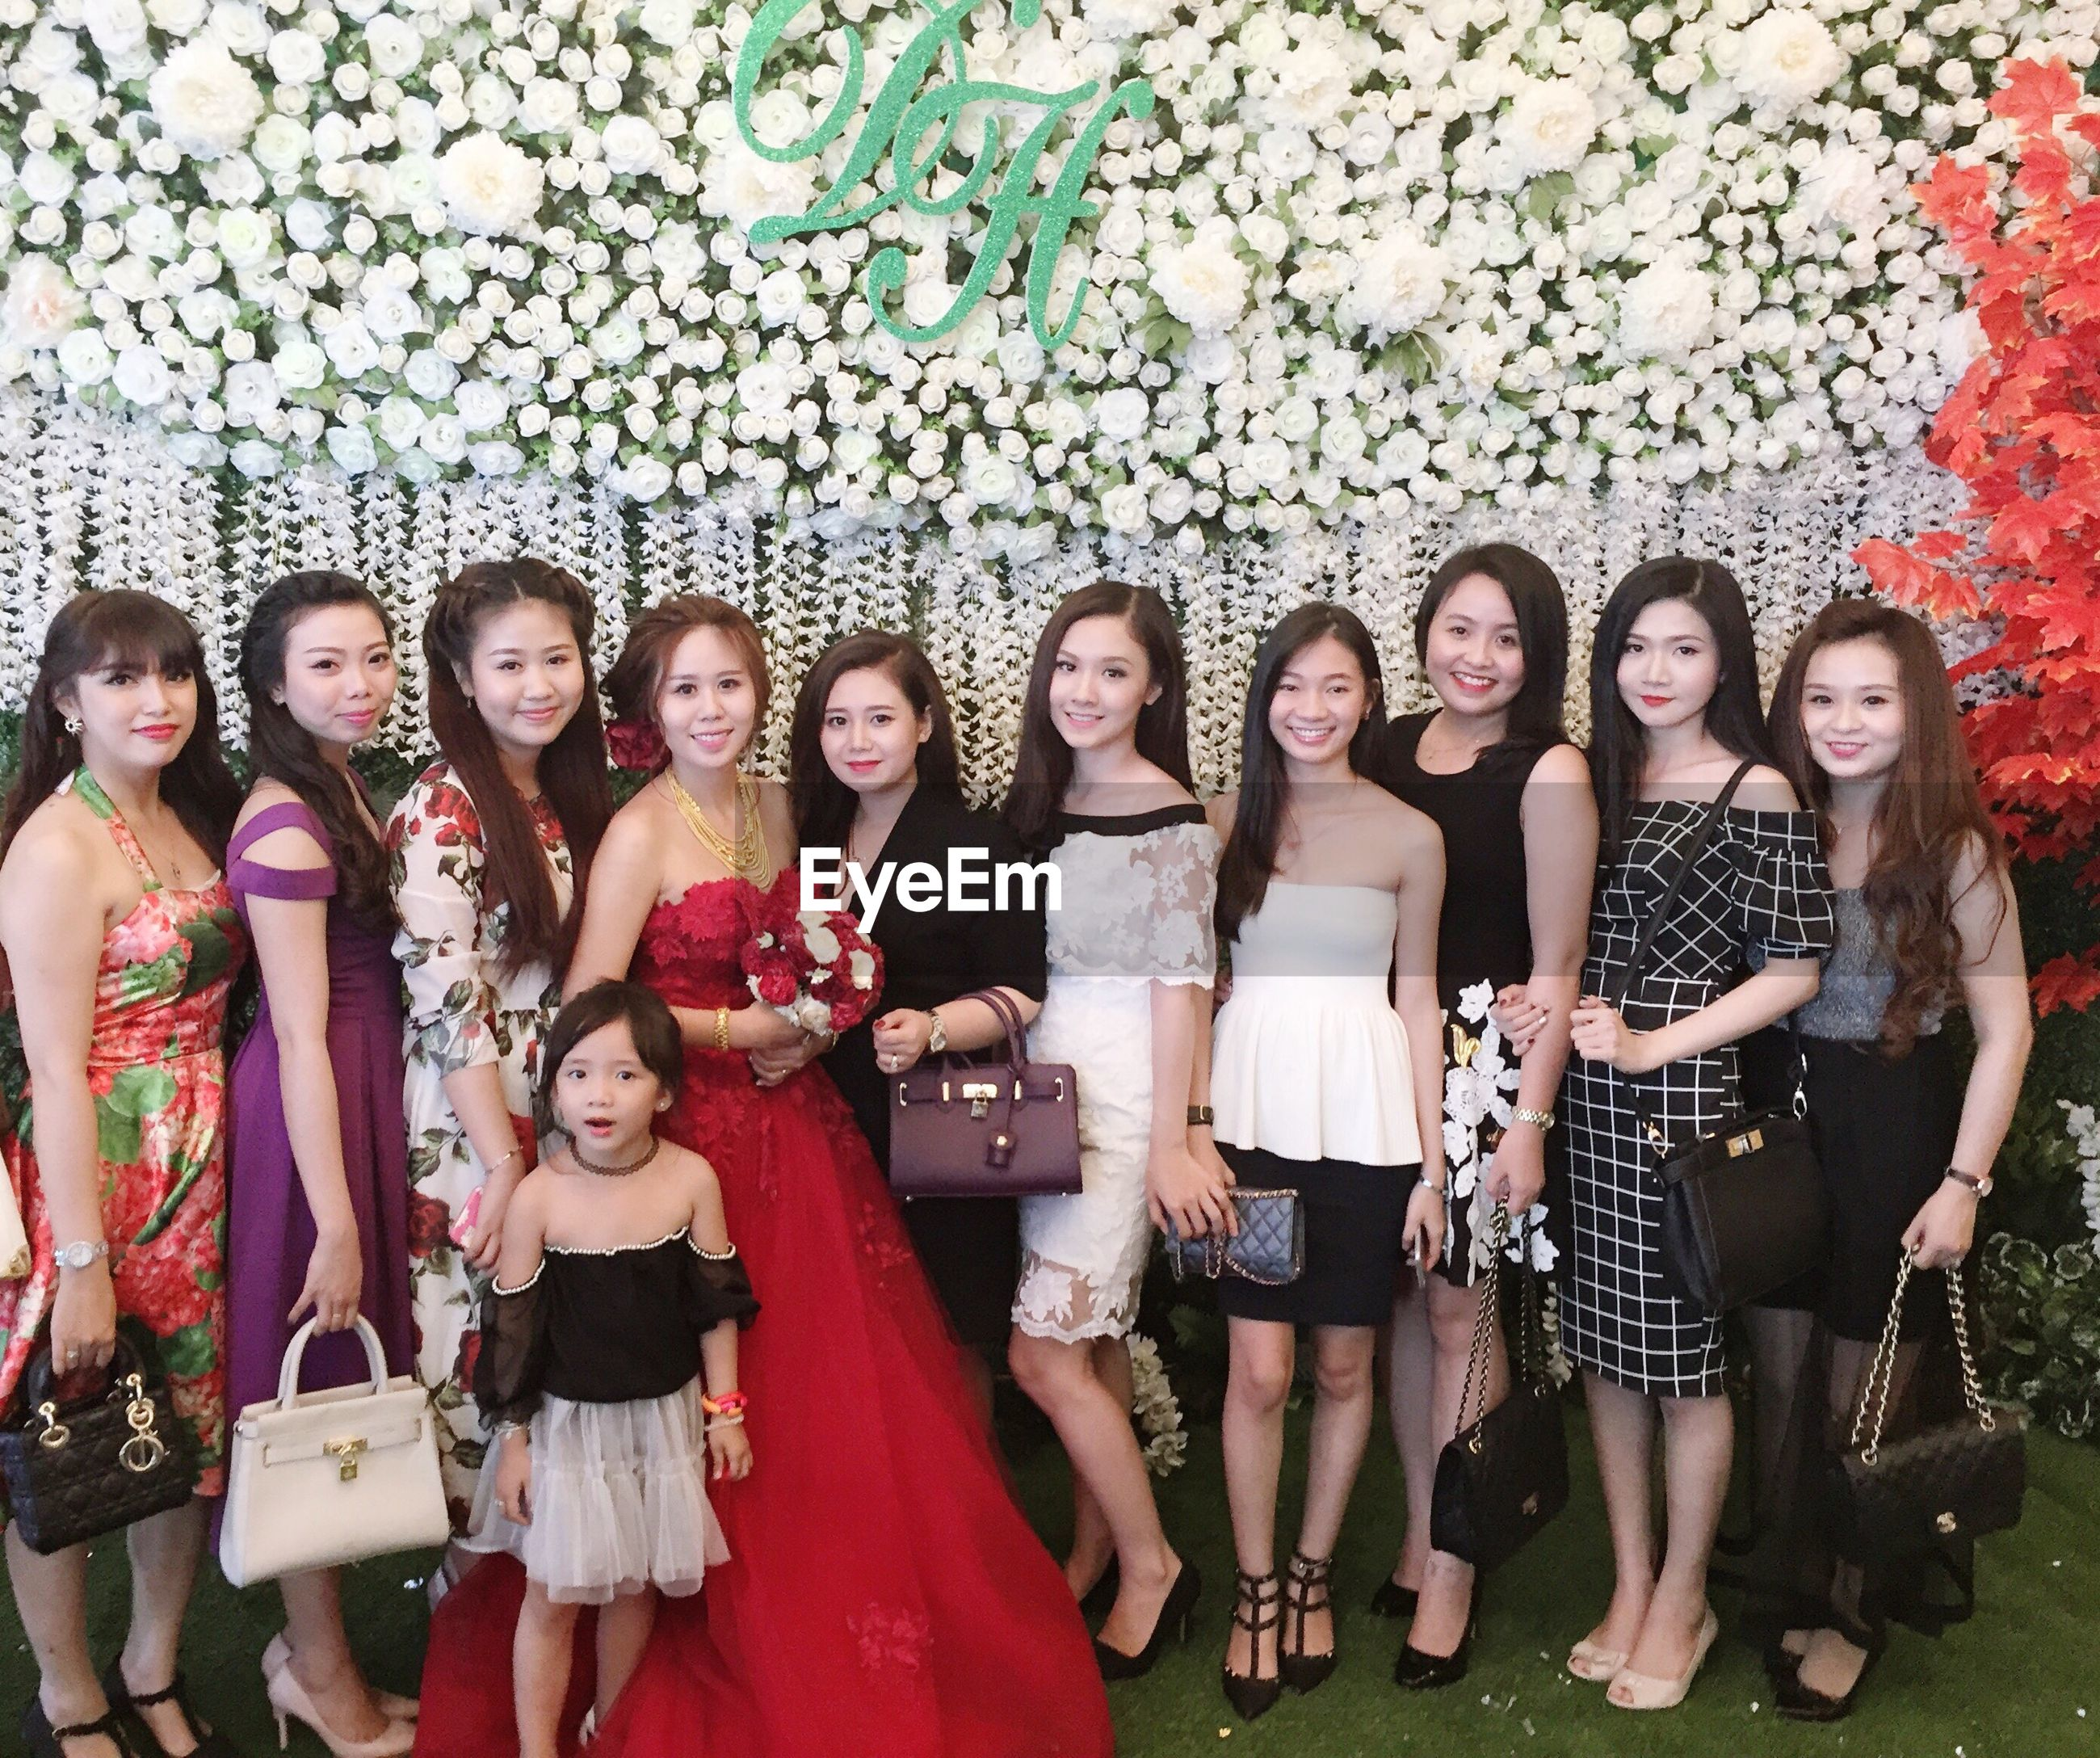 lifestyles, togetherness, leisure activity, standing, friendship, casual clothing, happiness, young women, love, bonding, large group of people, person, front view, side by side, young adult, smiling, fun, enjoyment